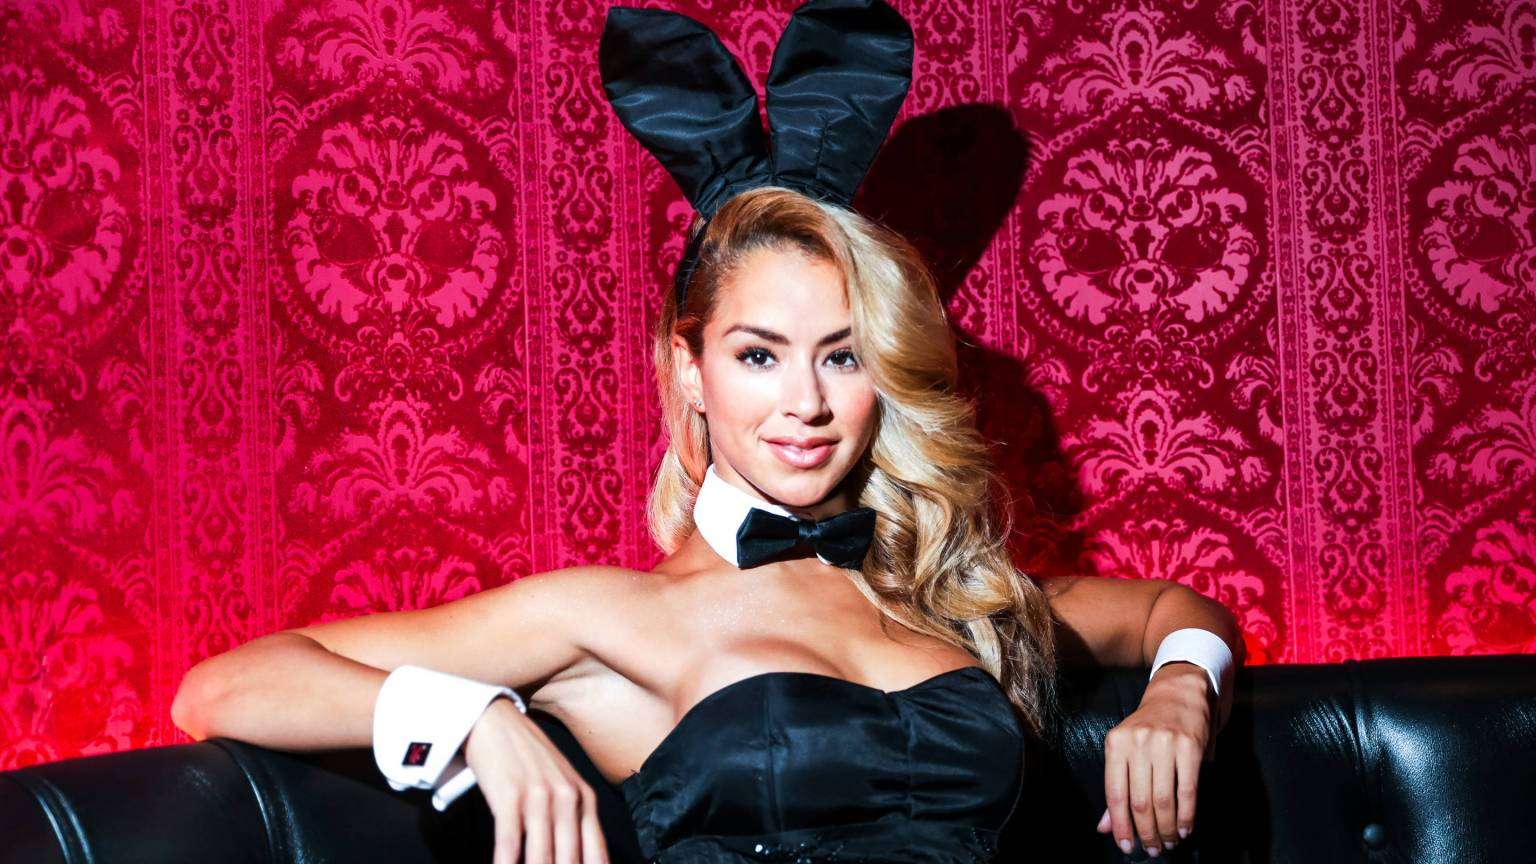 Why the World Needs the Playboy Club